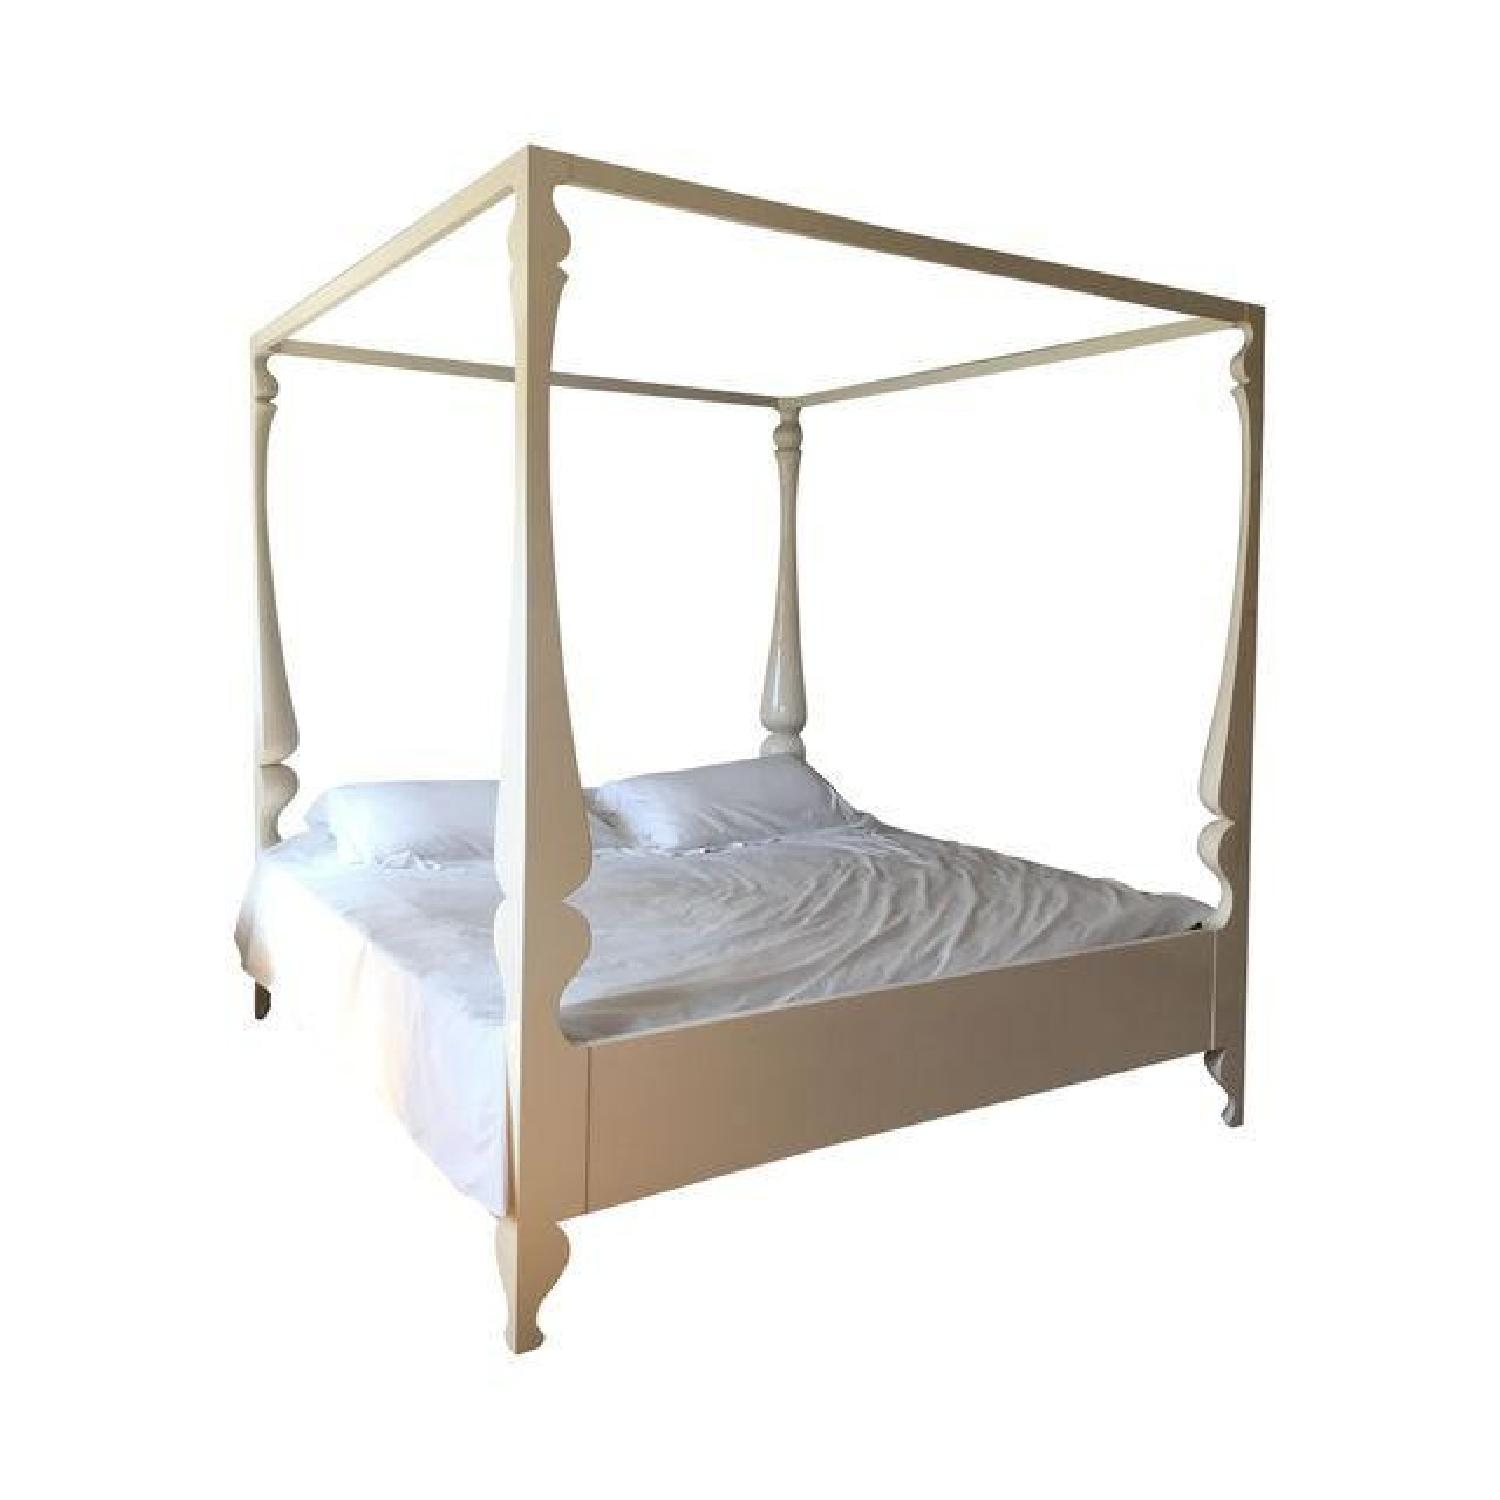 ABC Carpet and Home Louis Four Poster King Bed - image-0